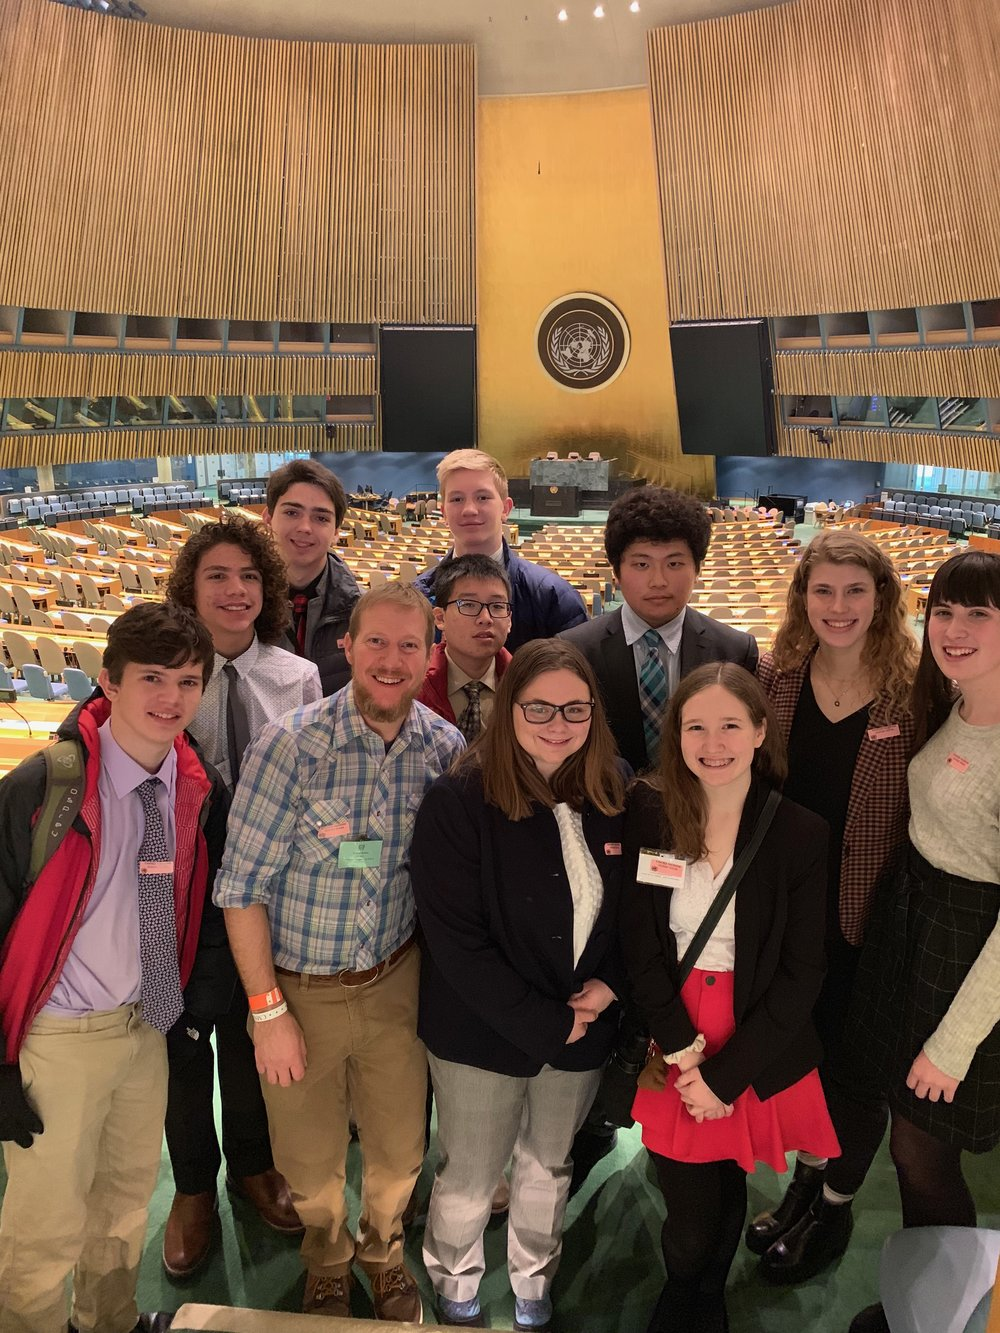 As part of their conference experience, students toured the United Nations.